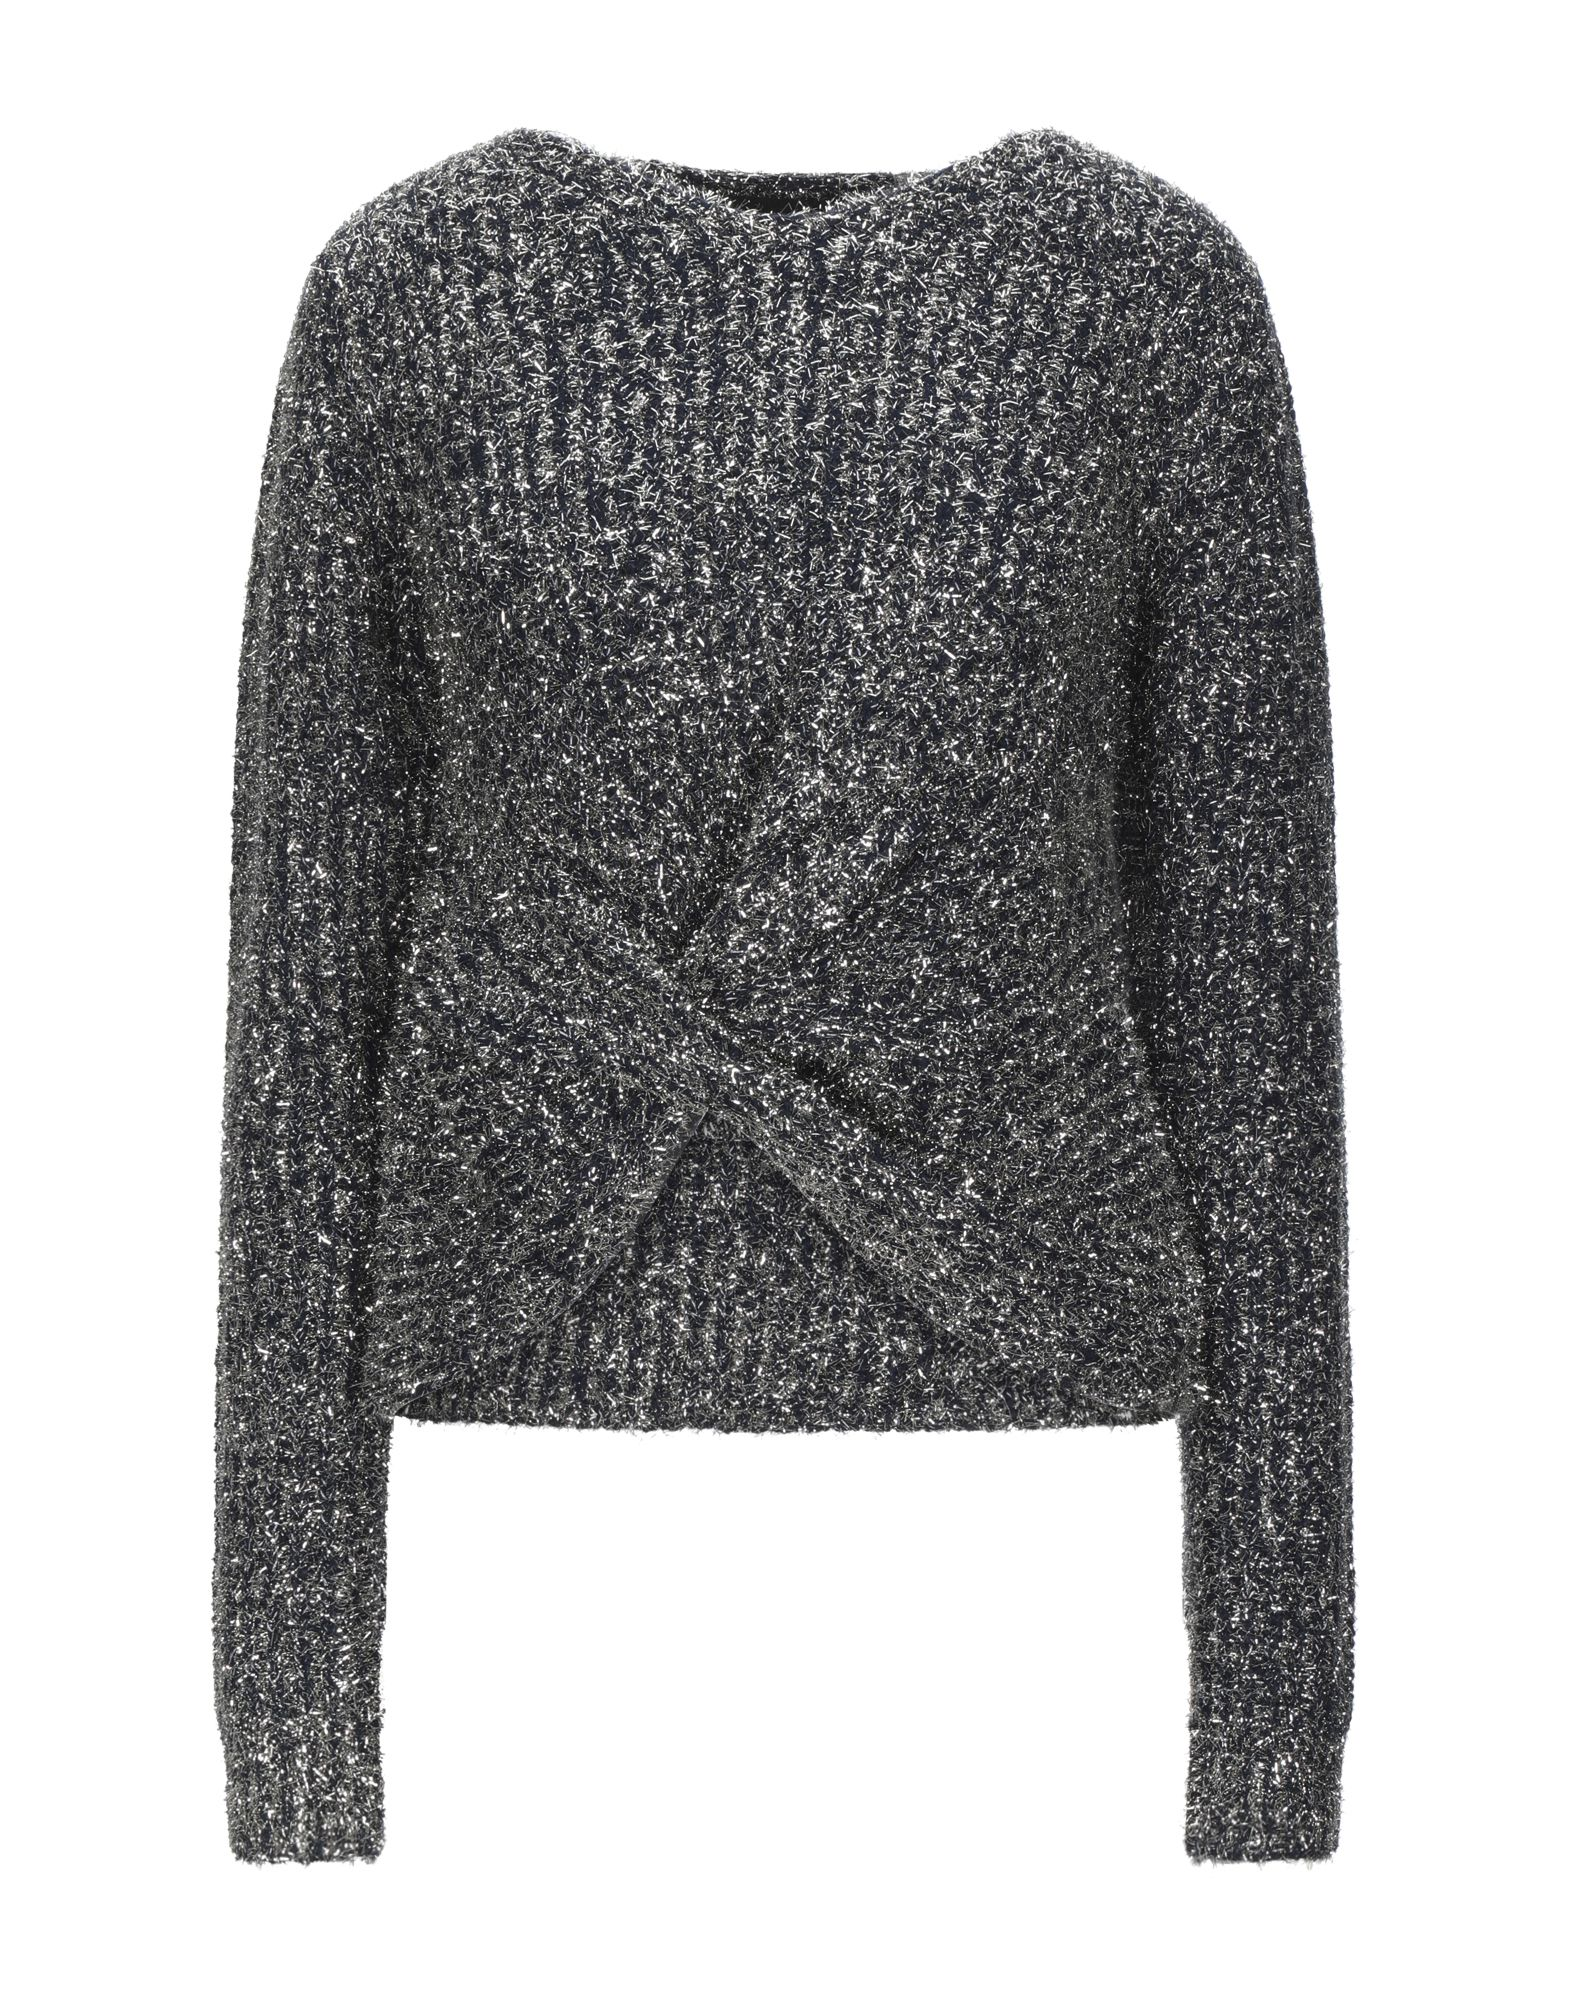 ENDLESS ROSE Sweaters. knitted, lamé, no appliqués, round collar, two-tone, medium-weight knit, long sleeves, no pockets. 68% Acrylic, 32% Polyester